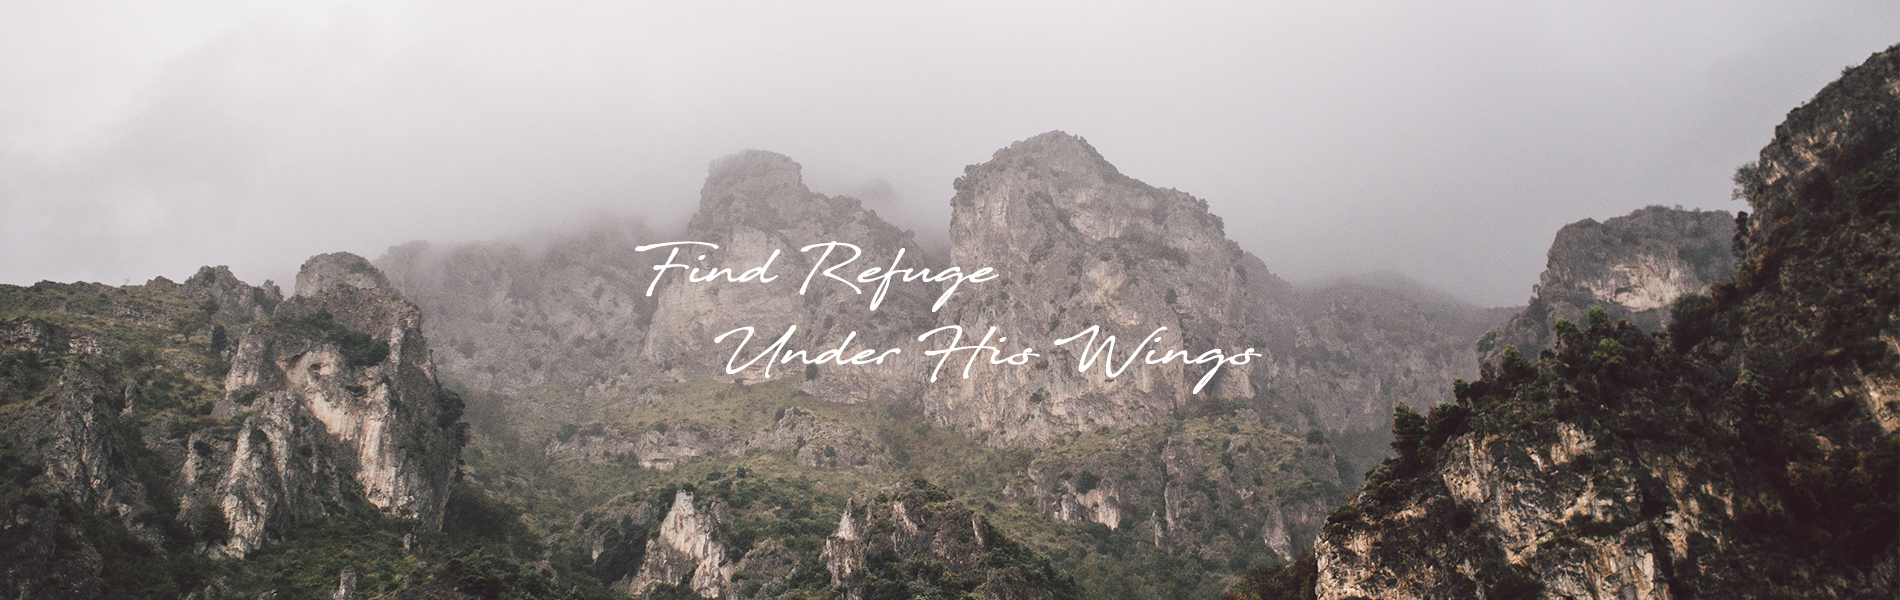 09-Sep_Find-Refuge-Under-His-Wings New Creation TV | Broadcasting the Gospel of Jesus